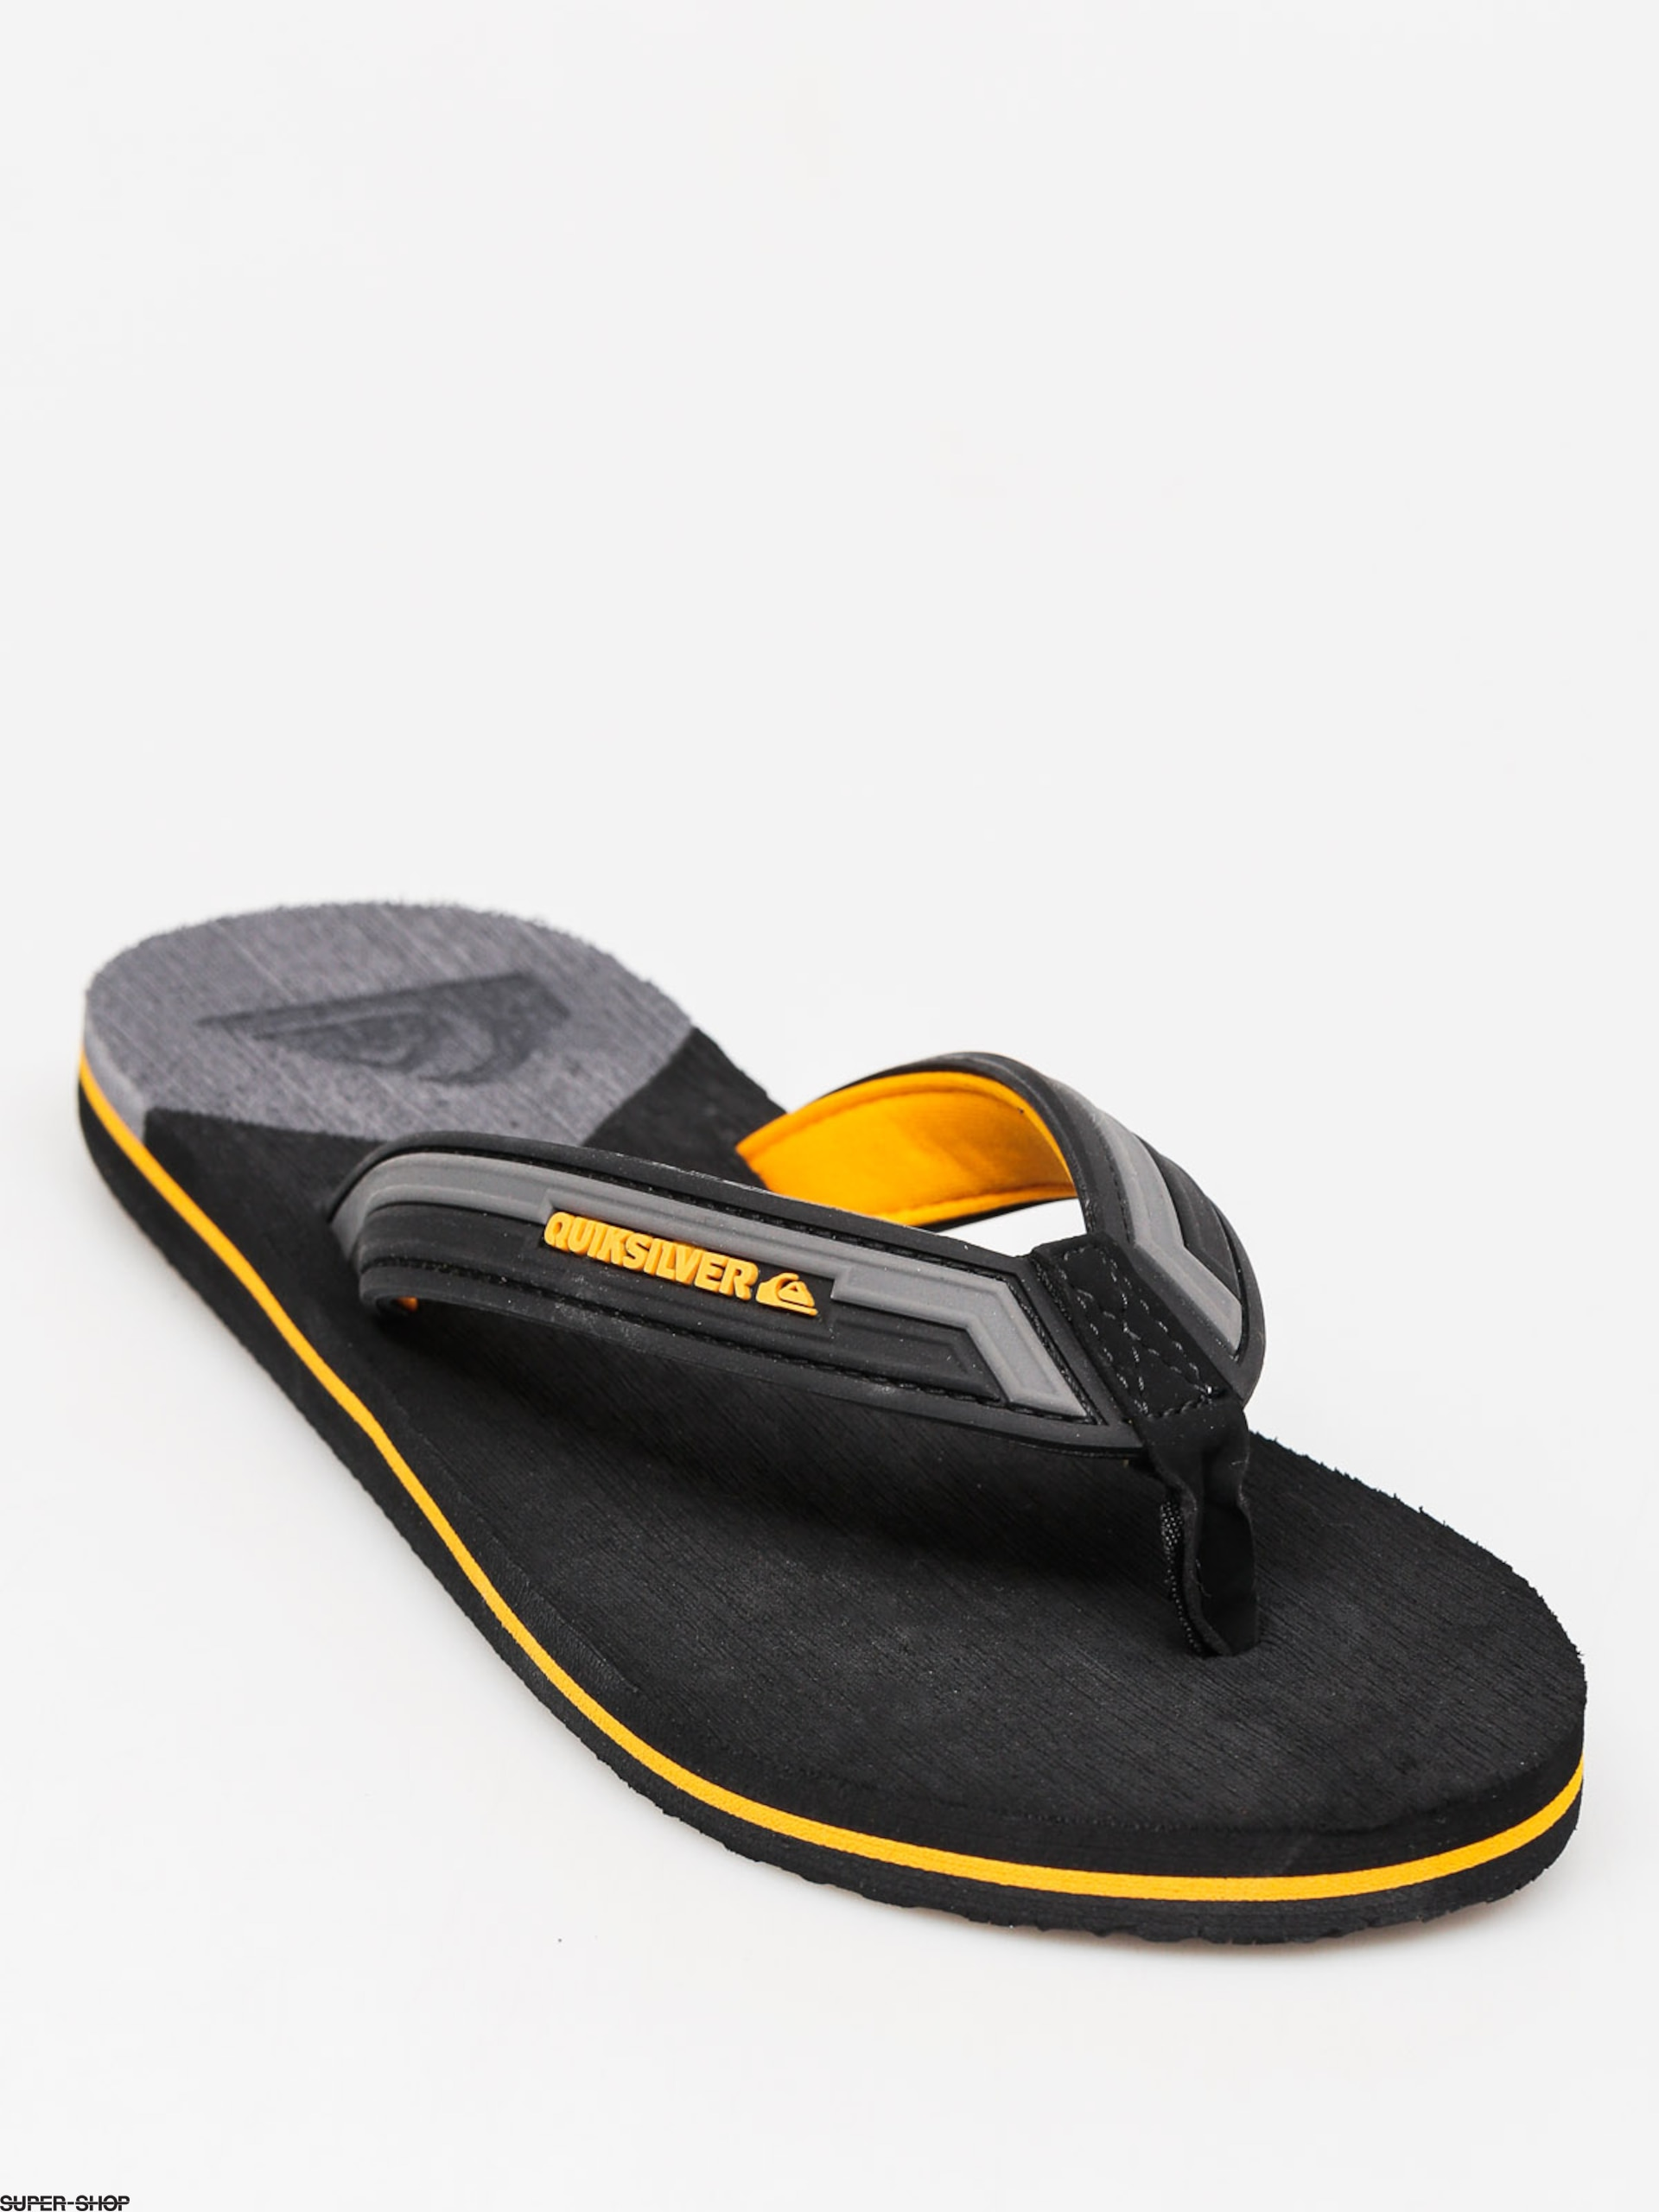 Quiksilver Flip-flops Molokai New Wave (grey/grey/orange)